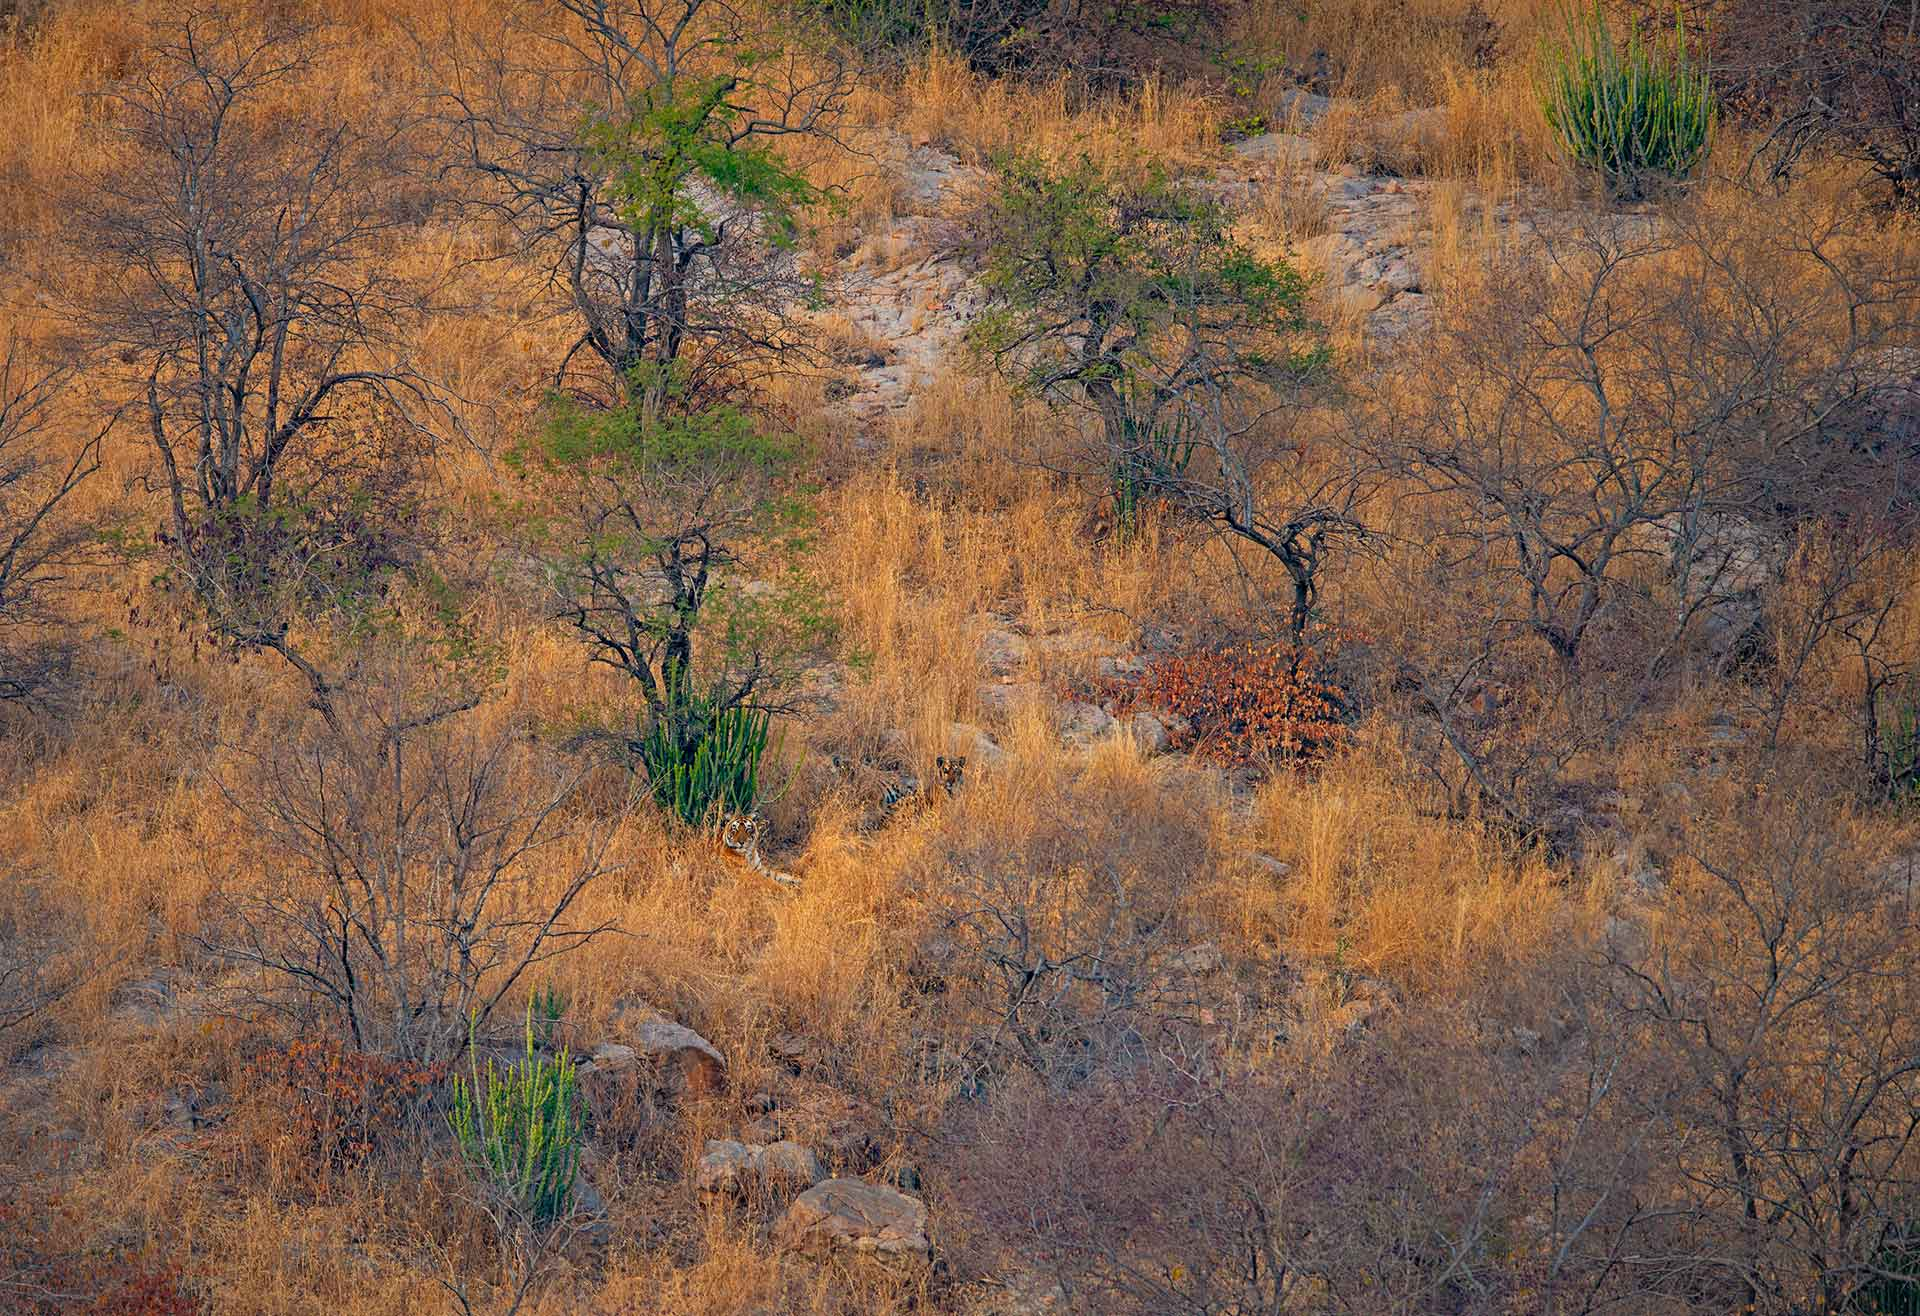 Ranthambore's landscape changes with the seasons. In summer, its palette is dominated by yellow, orange, brown, and black — perfect camouflage for tigers (Panthera tigris) that stalk these grounds. Try and spot the tigers hidden in this image.  In the latter half of the year, when the rains arrive, the waterbodies in Ranthambore fill up, attracting a bevy of migratory birds, including ducks, waders, raptors, and locally migratory species such as the painted storks, flamingos, and sarus cranes. Photo: Dhritiman Mukherjee